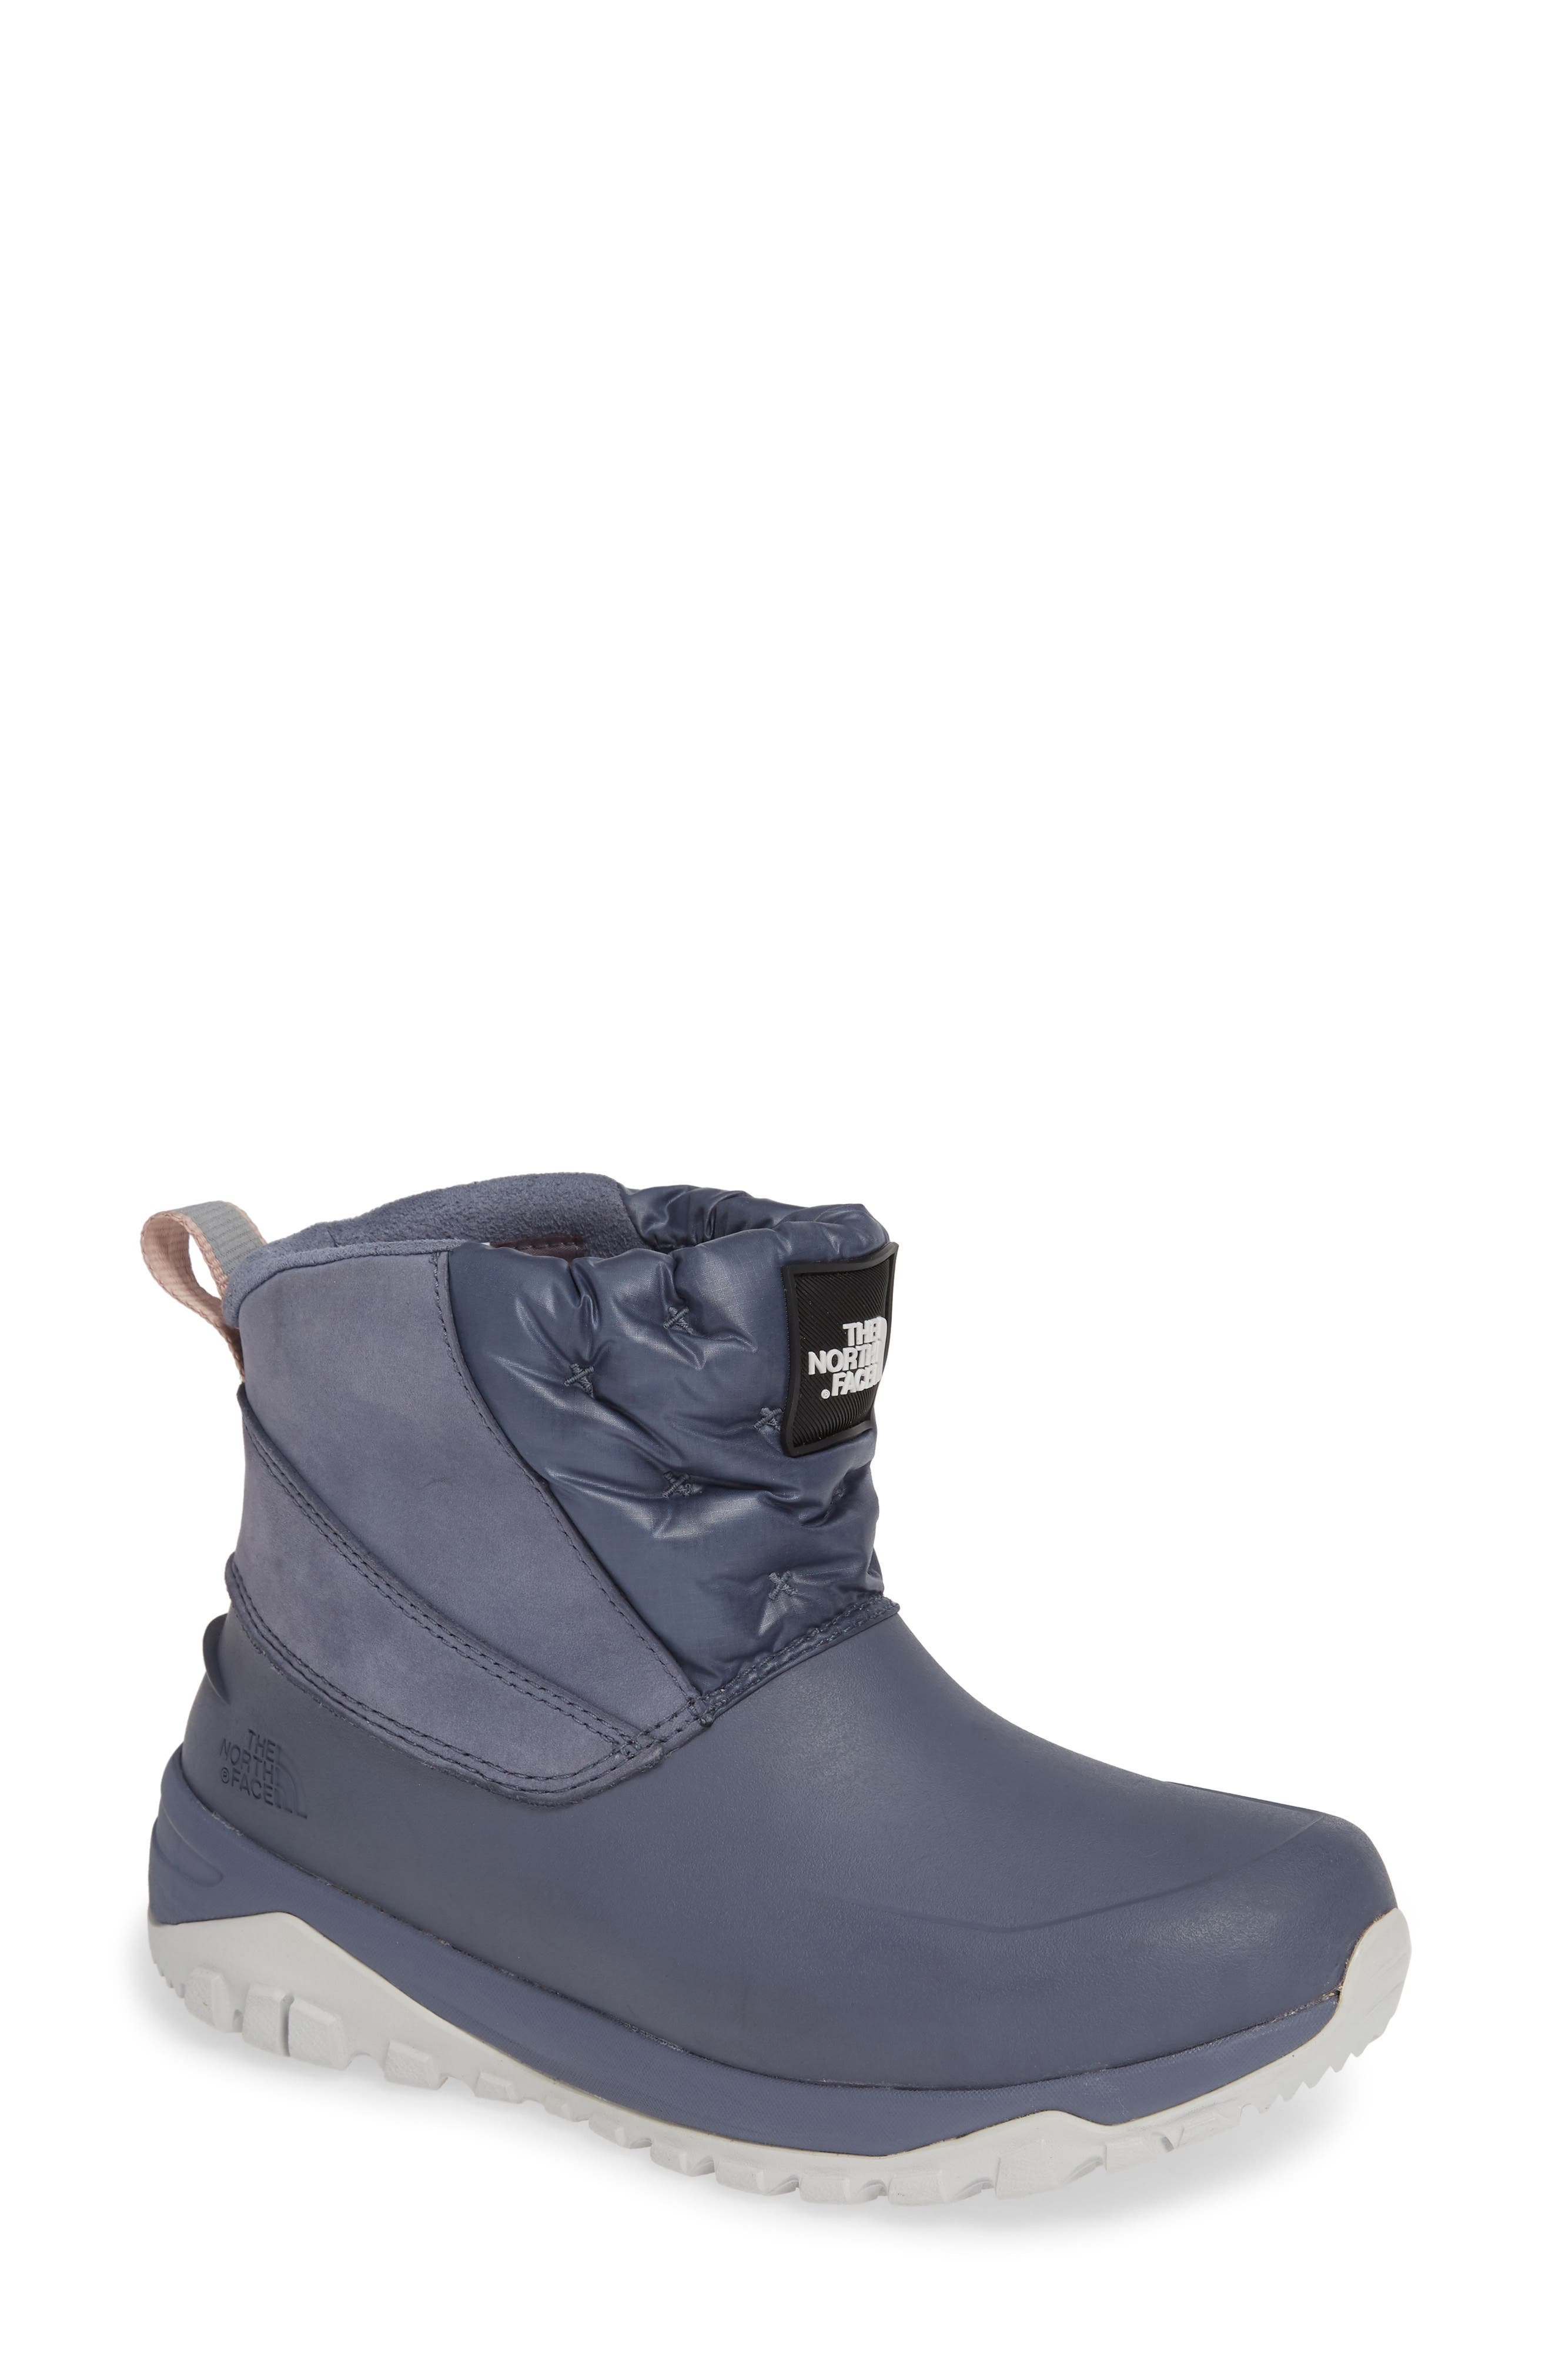 Yukiona Waterproof Ankle Boot,                         Main,                         color, GRISAILLE GREY/ TIN GREY